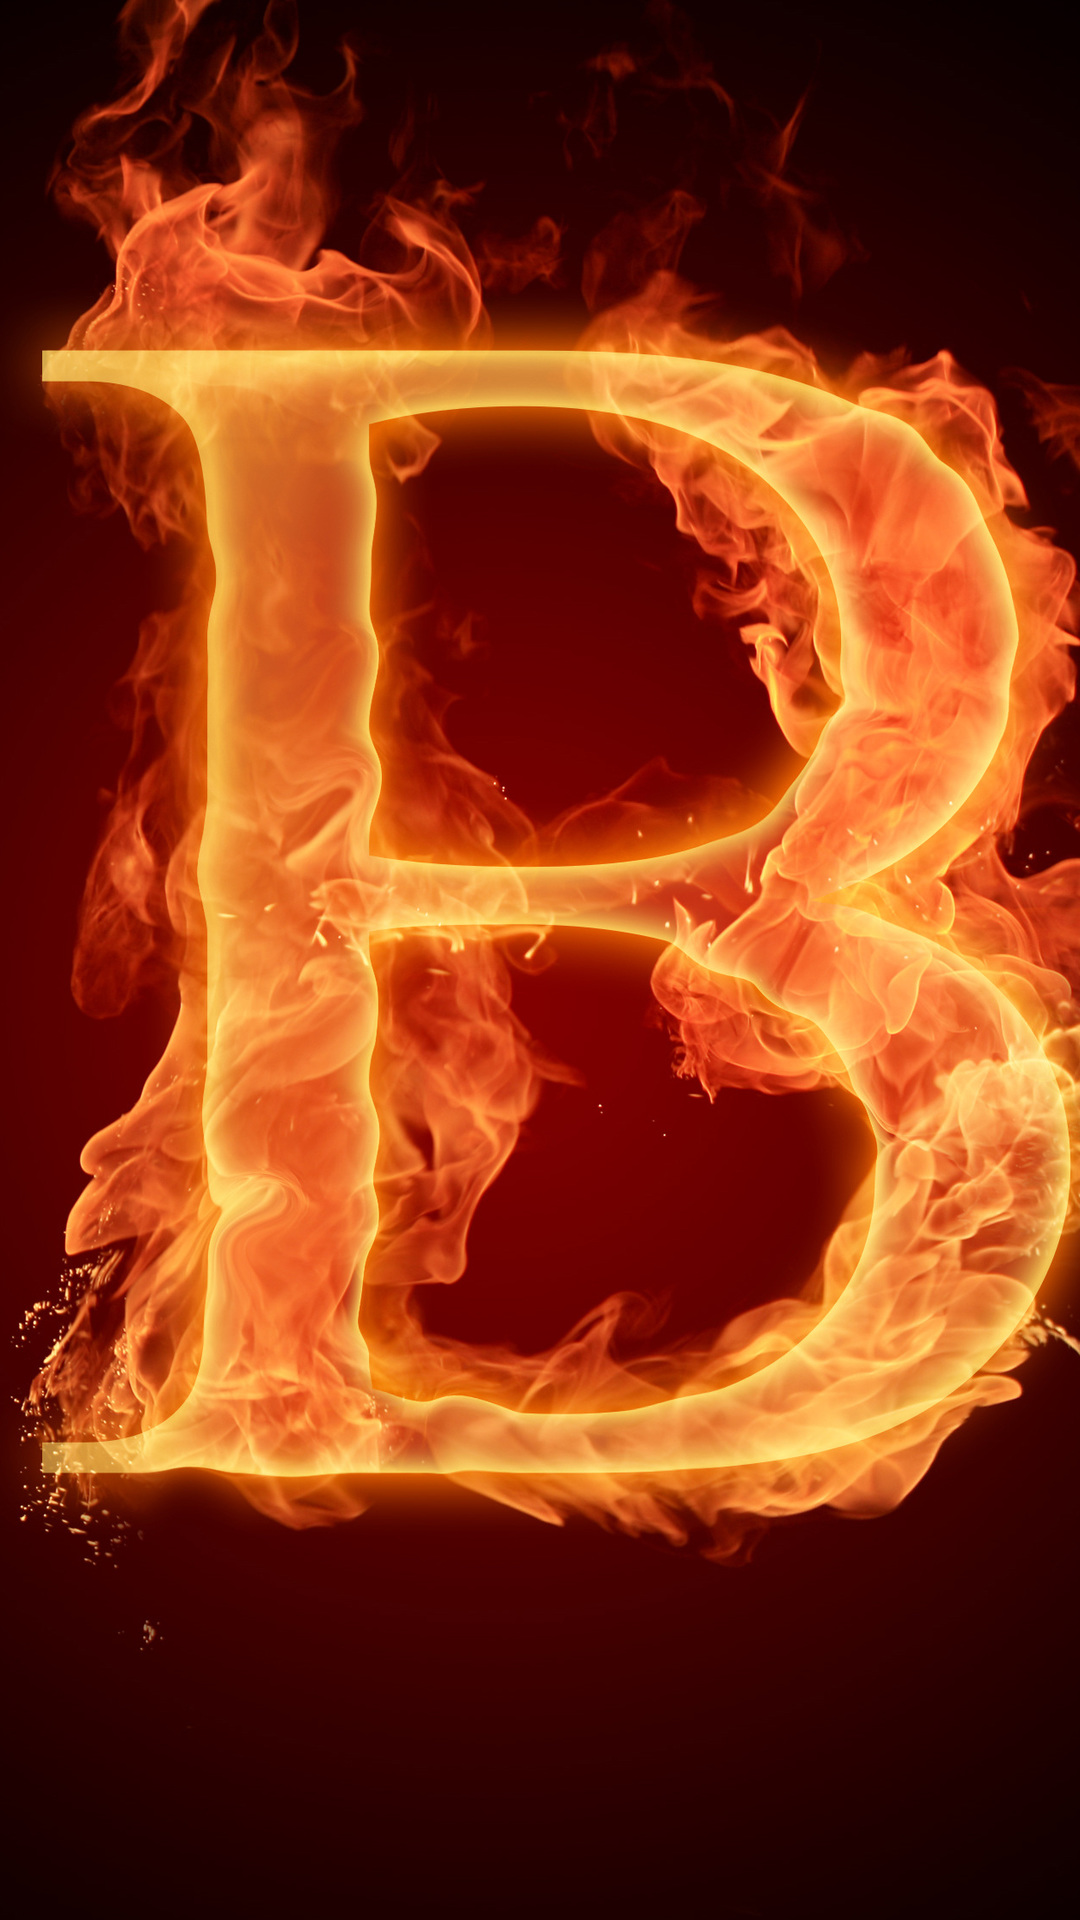 Fire Flame Litera Alphabet B Letter Photo B Letter Wallpaper Download 1080x1920 Download Hd Wallpaper Wallpapertip